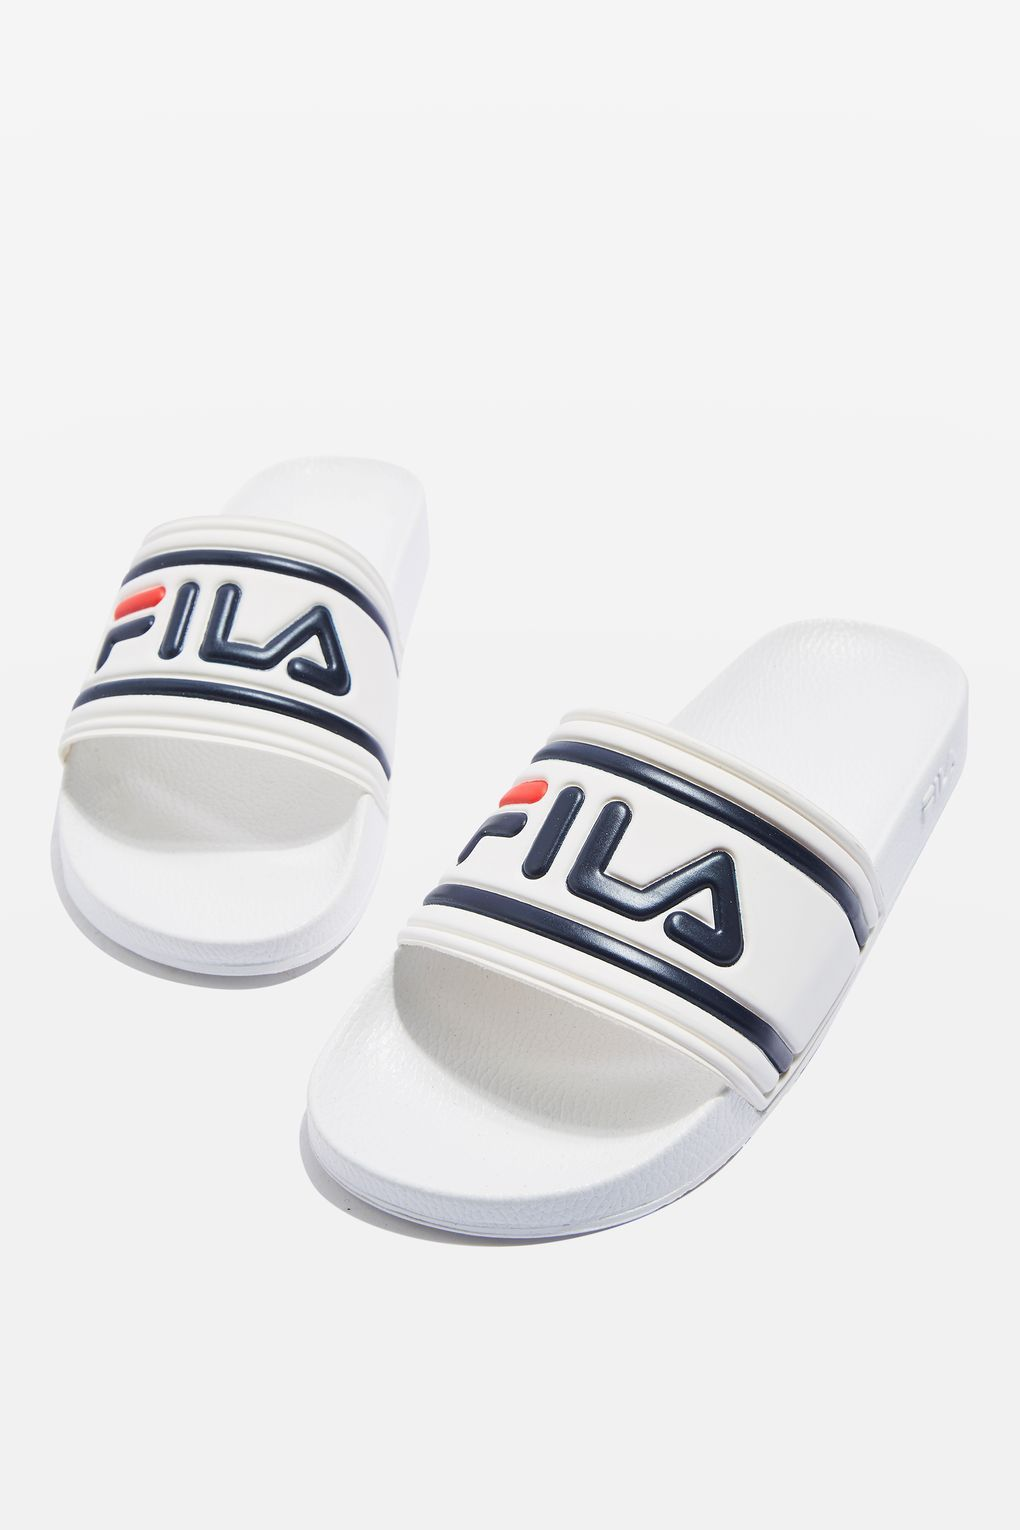 buy cheap marketable clearance under $60 Fila Morro Bay Logo Sliders In Black fashionable lbdu3cGeNJ